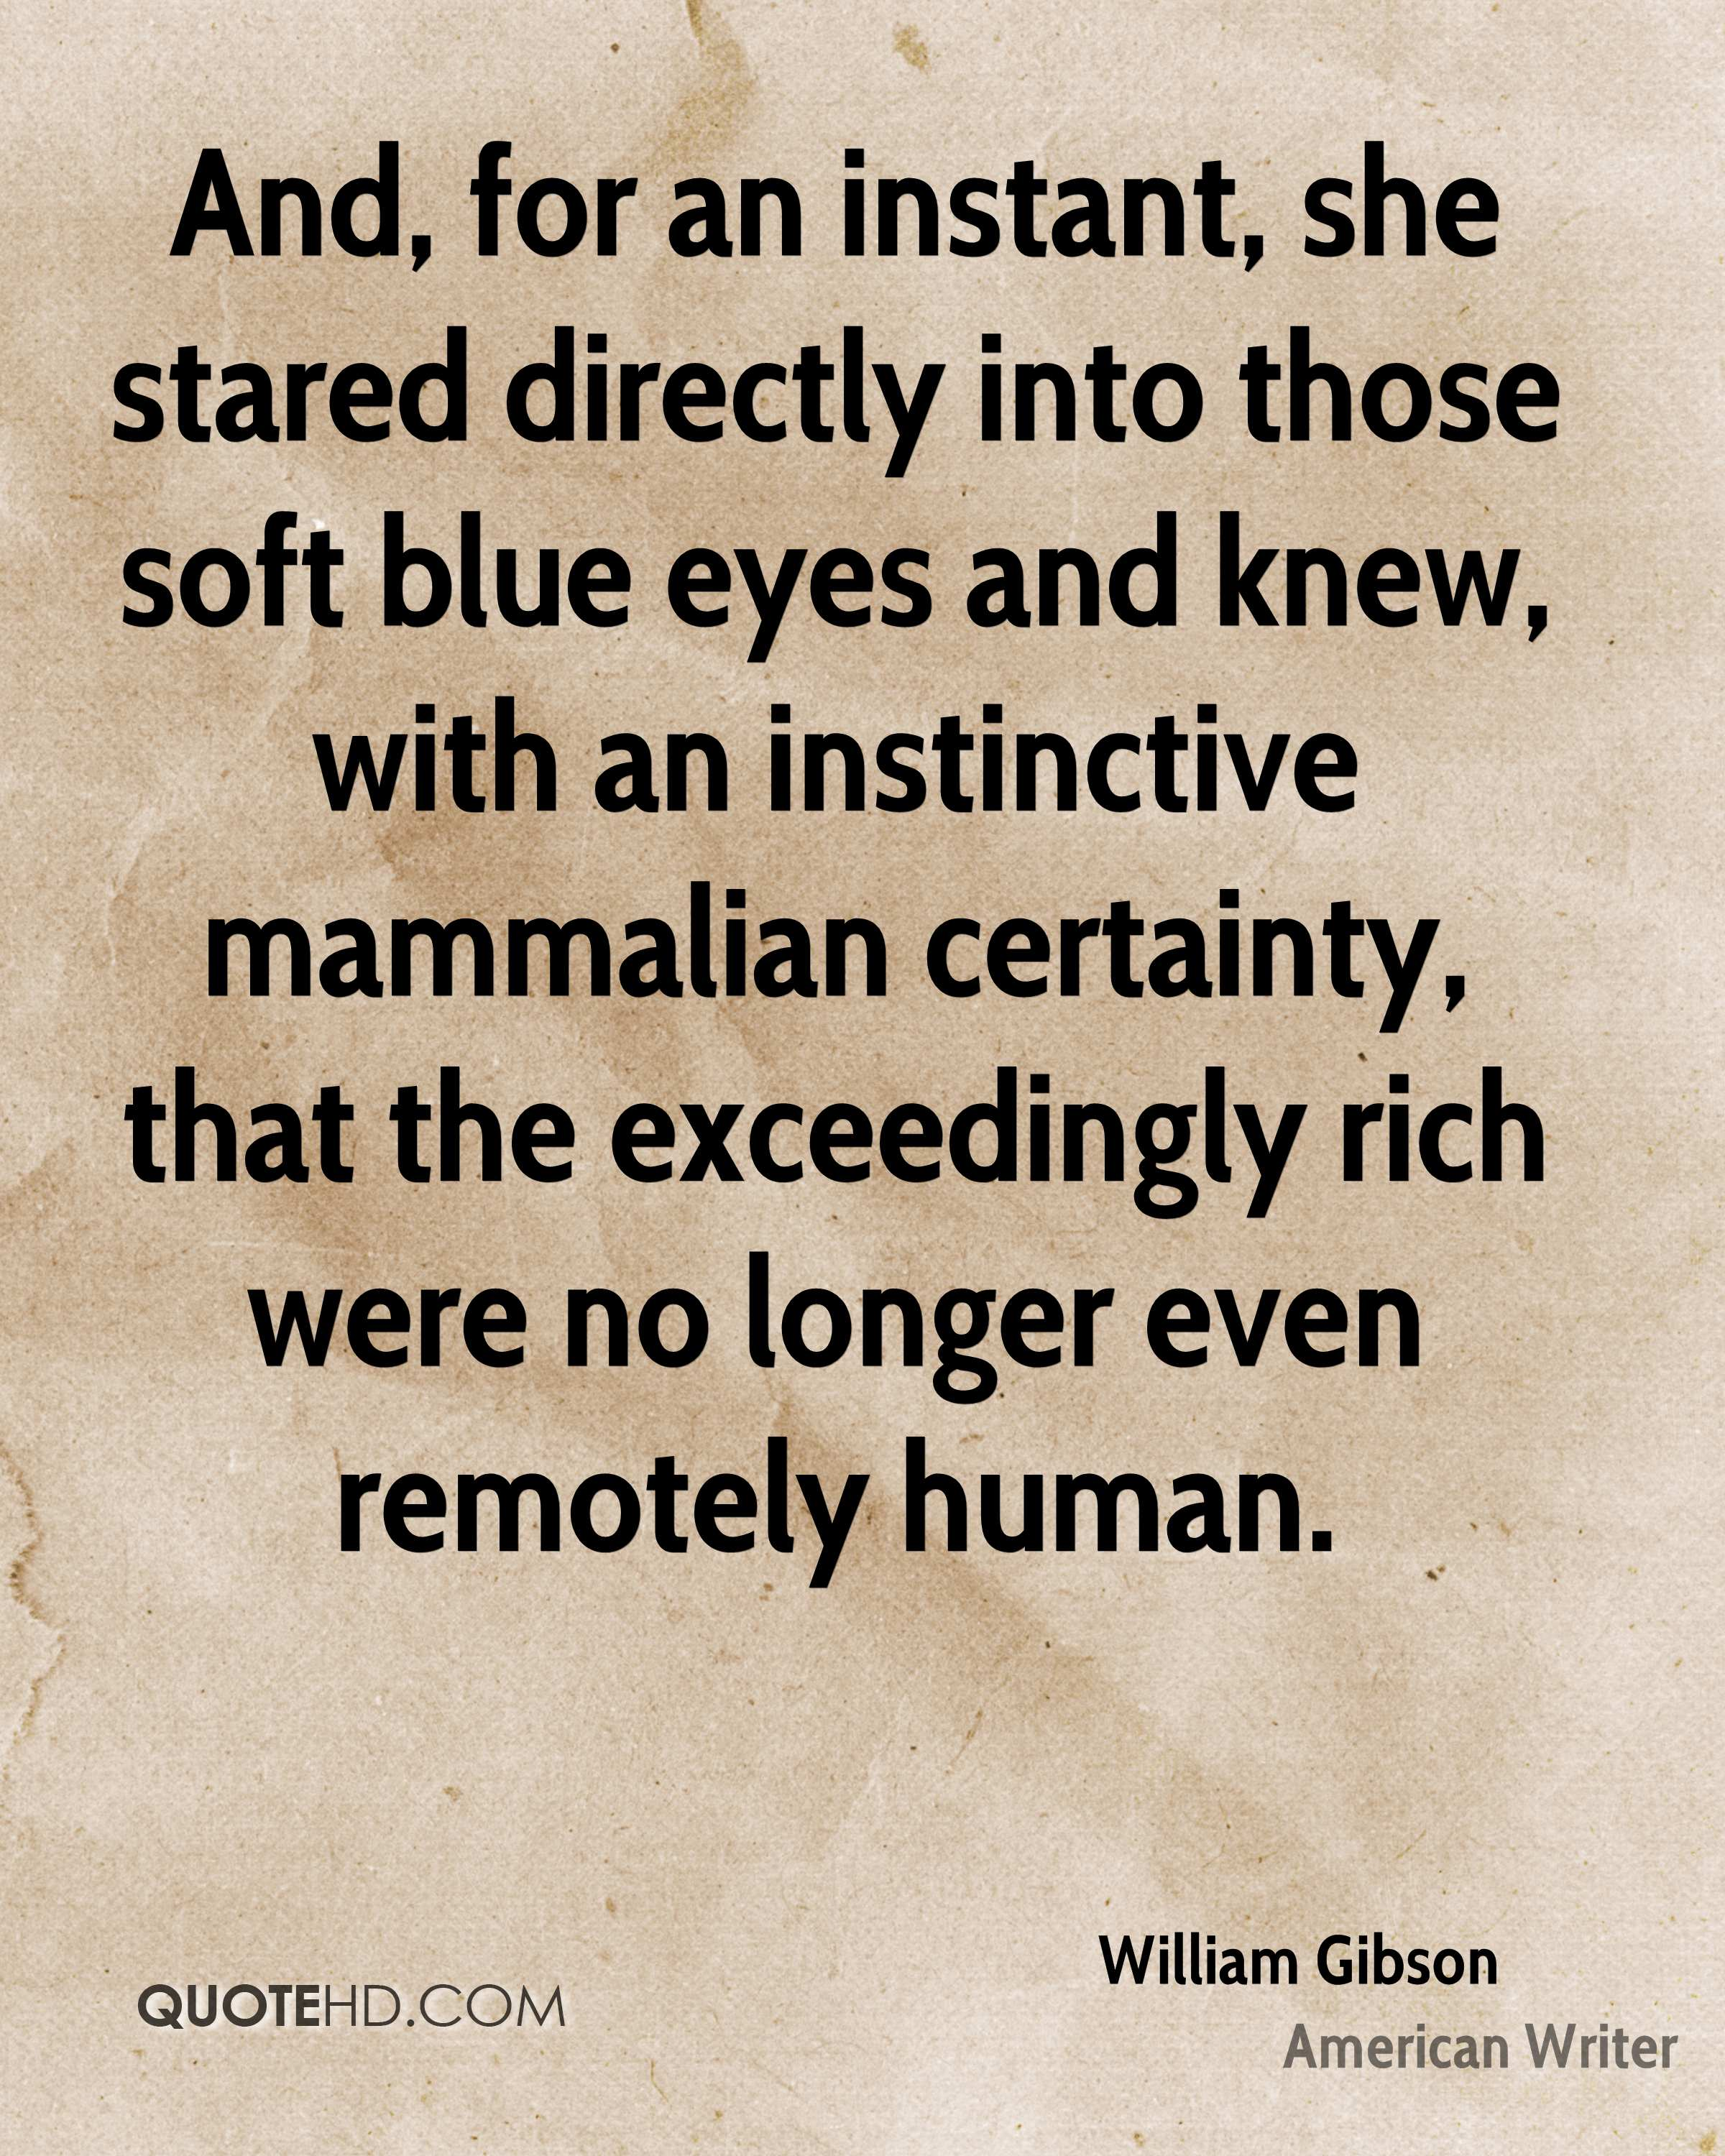 And, for an instant, she stared directly into those soft blue eyes and knew, with an instinctive mammalian certainty, that the exceedingly rich were no longer even remotely human.